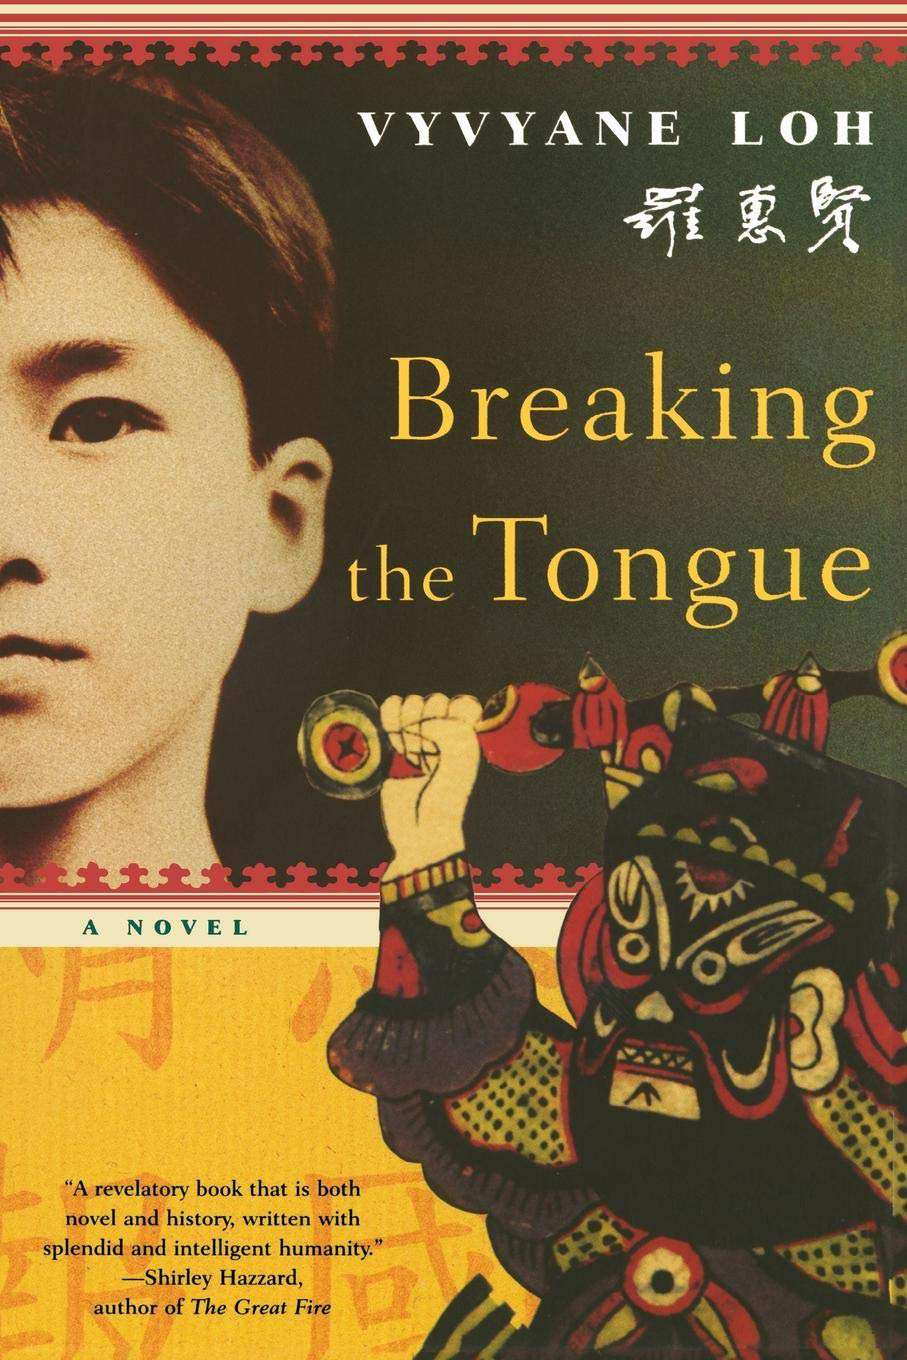 Breaking the Tongue by Vyvyane Loh